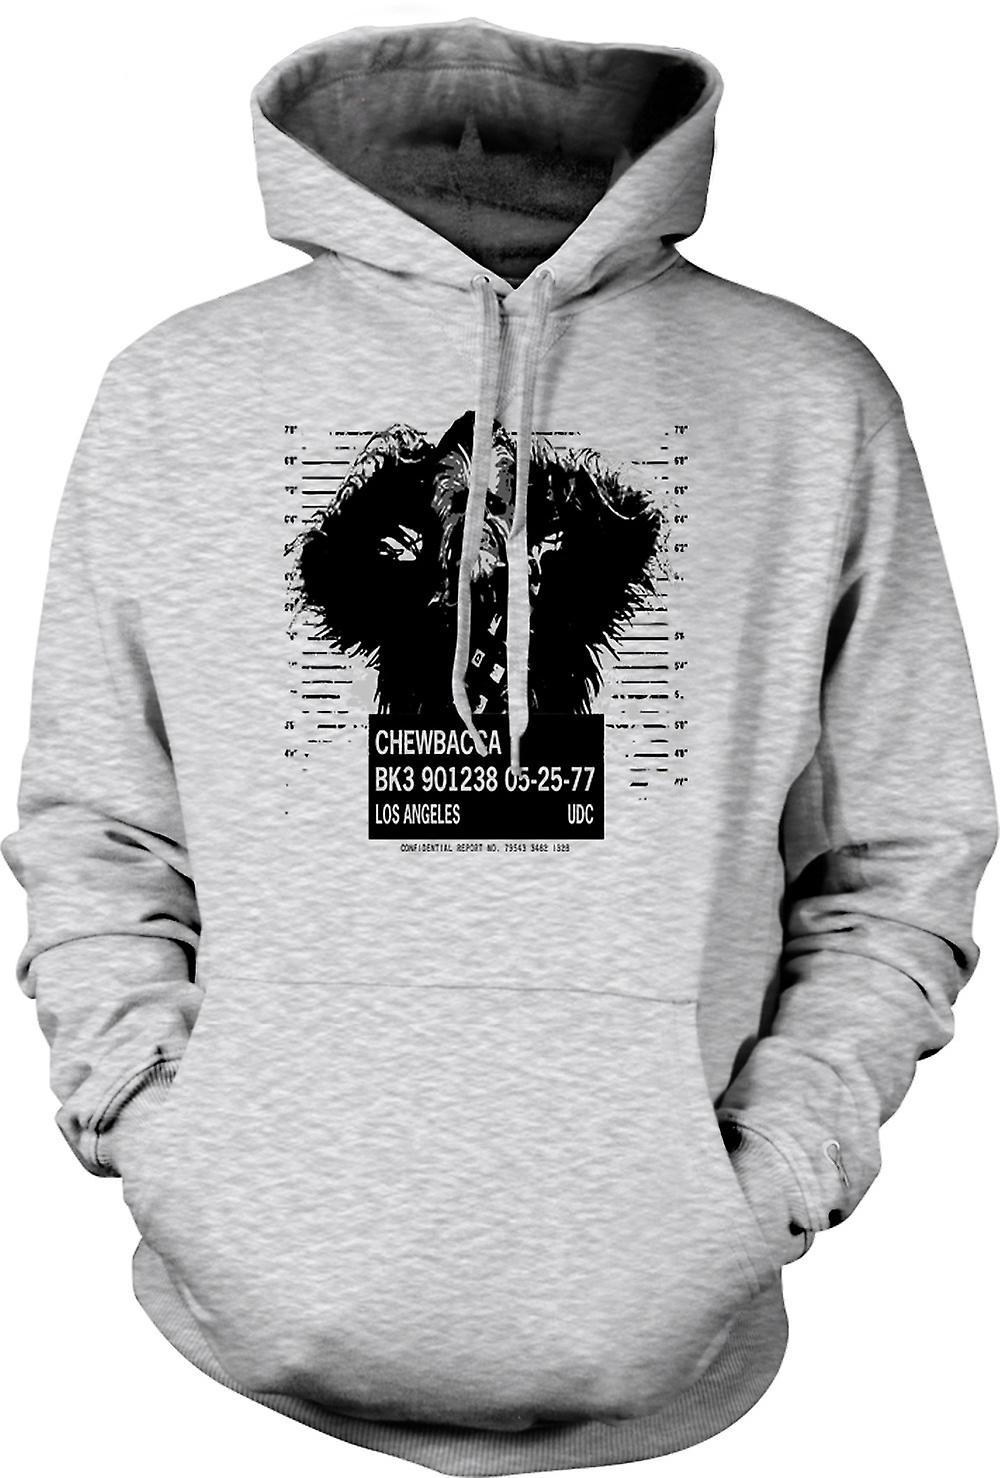 Mens Hoodie - Chewbacca Mok Shot - Star Wars